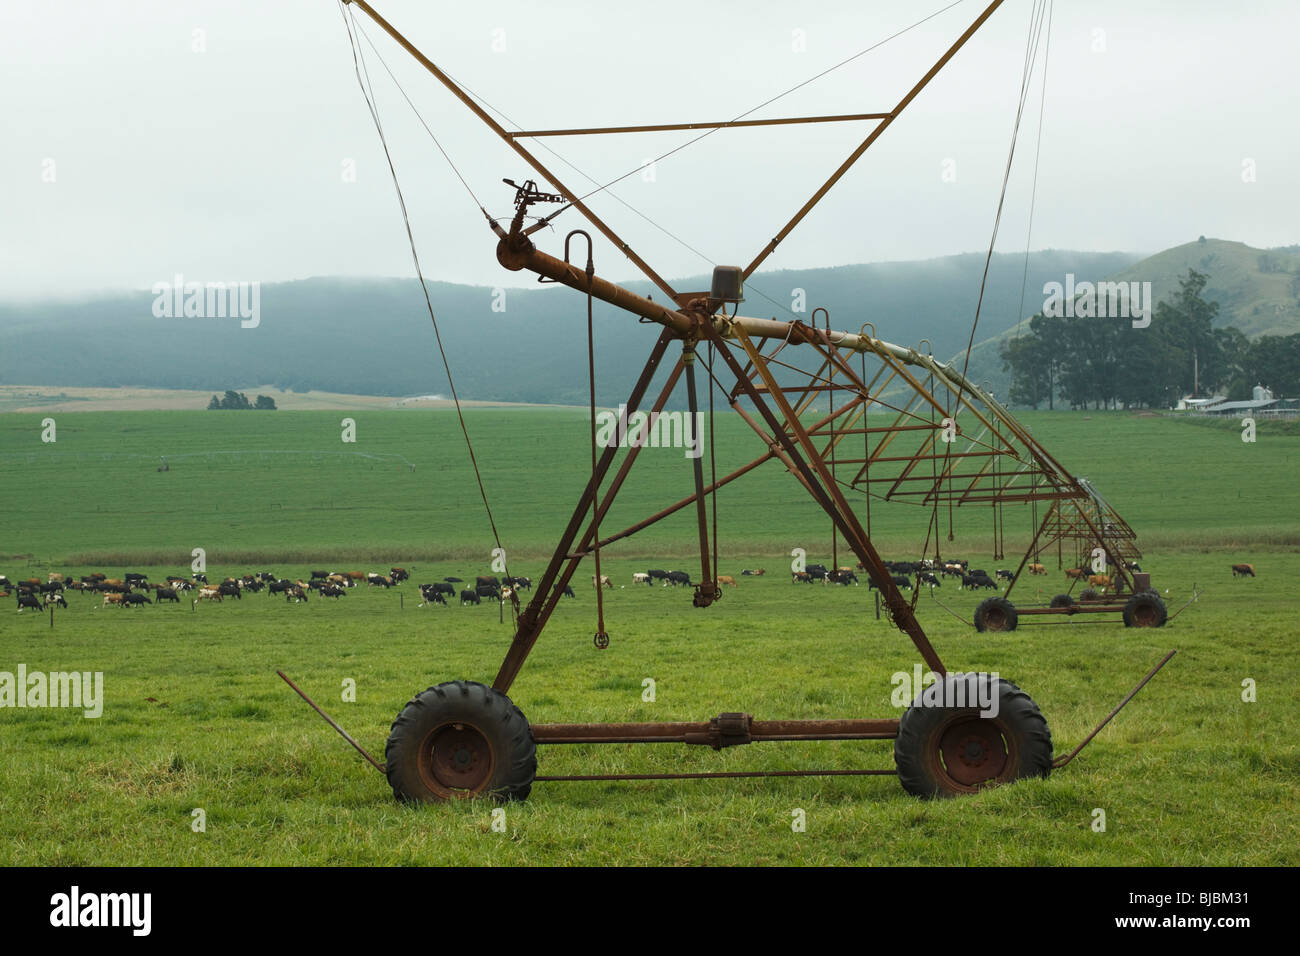 Centre pivot irrigation system on a farm in the Midlands, Kwazulu Natal, South Africa. - Stock Image